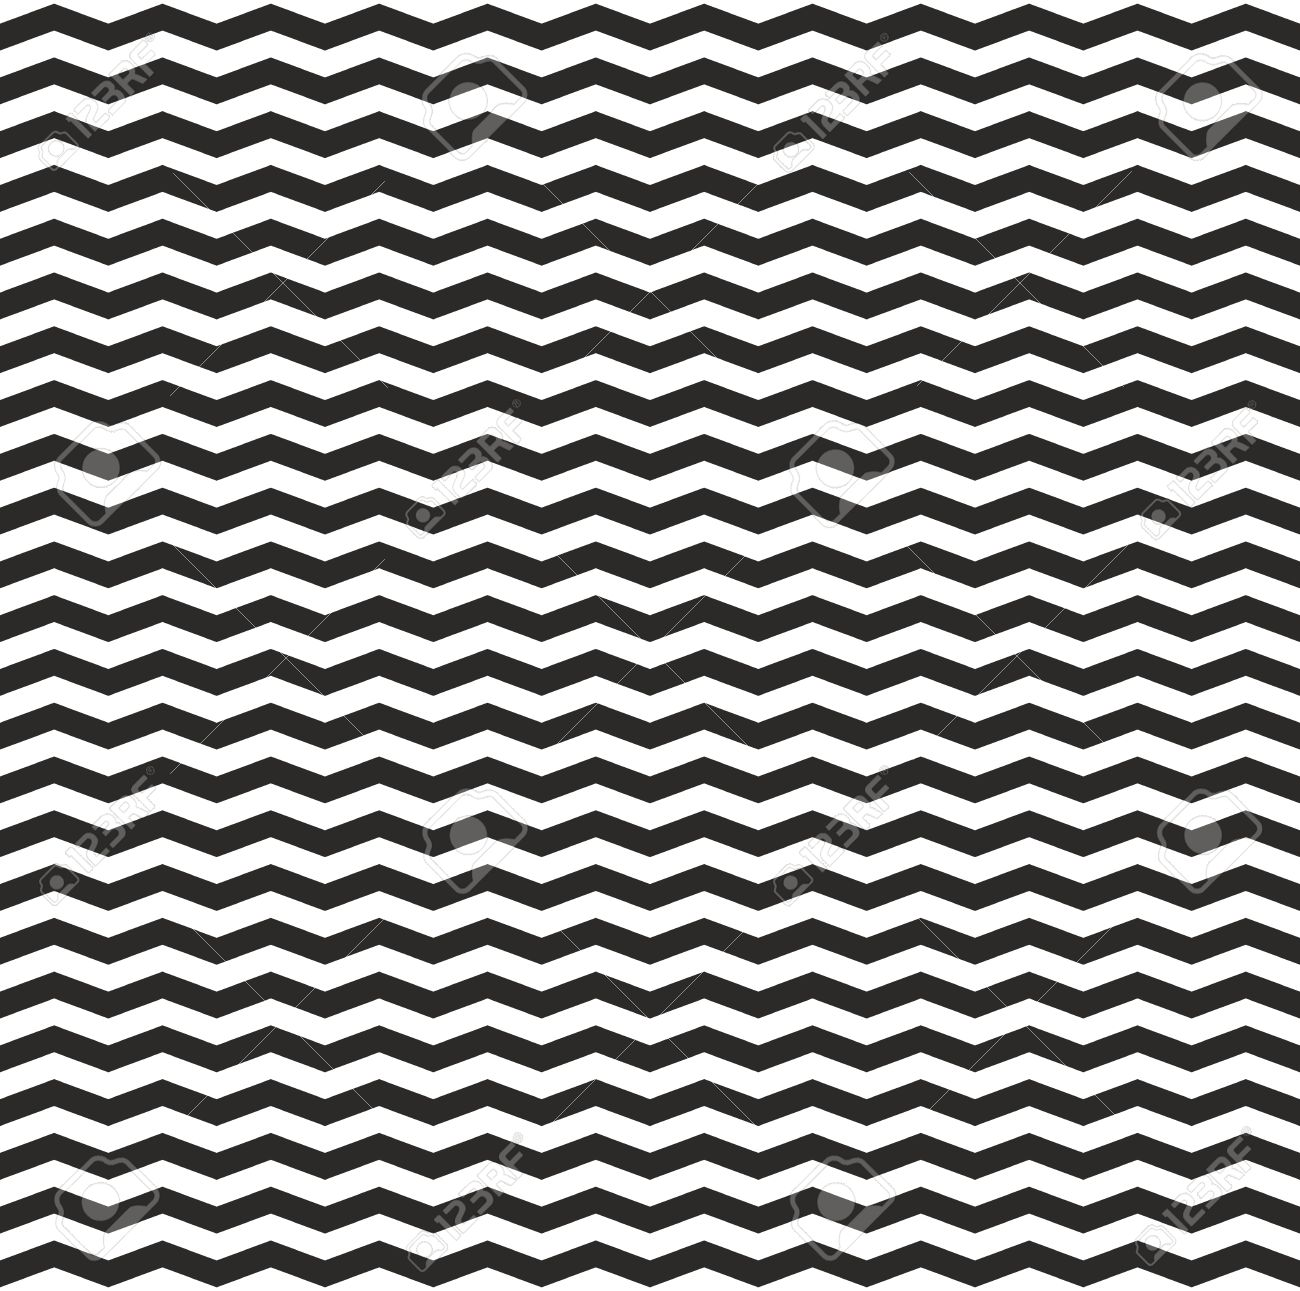 Vector zig zag vector chevron black and white tile pattern